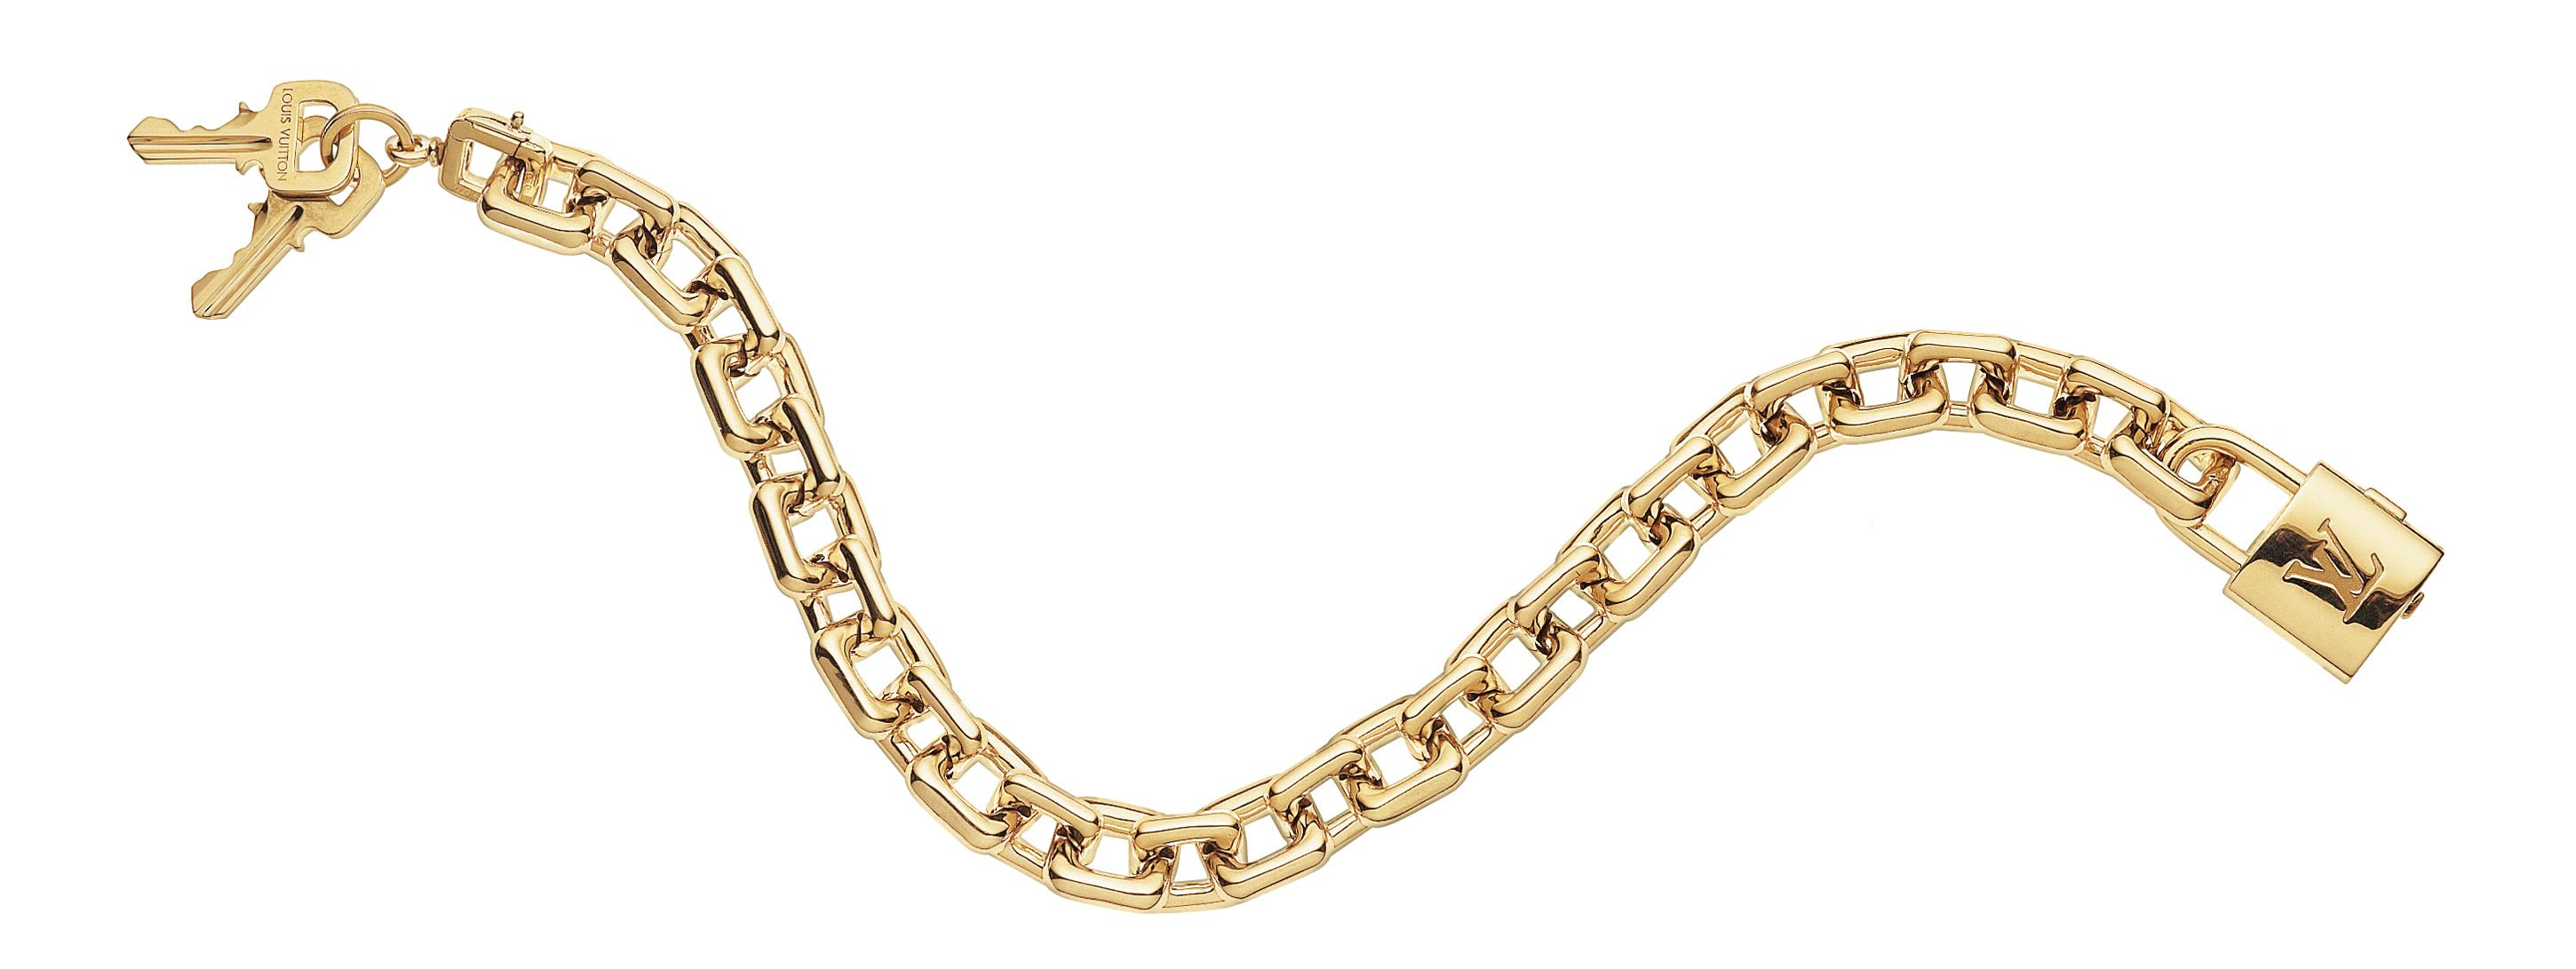 The louis vuitton charms bracelet is on our lvwishlist this holiday